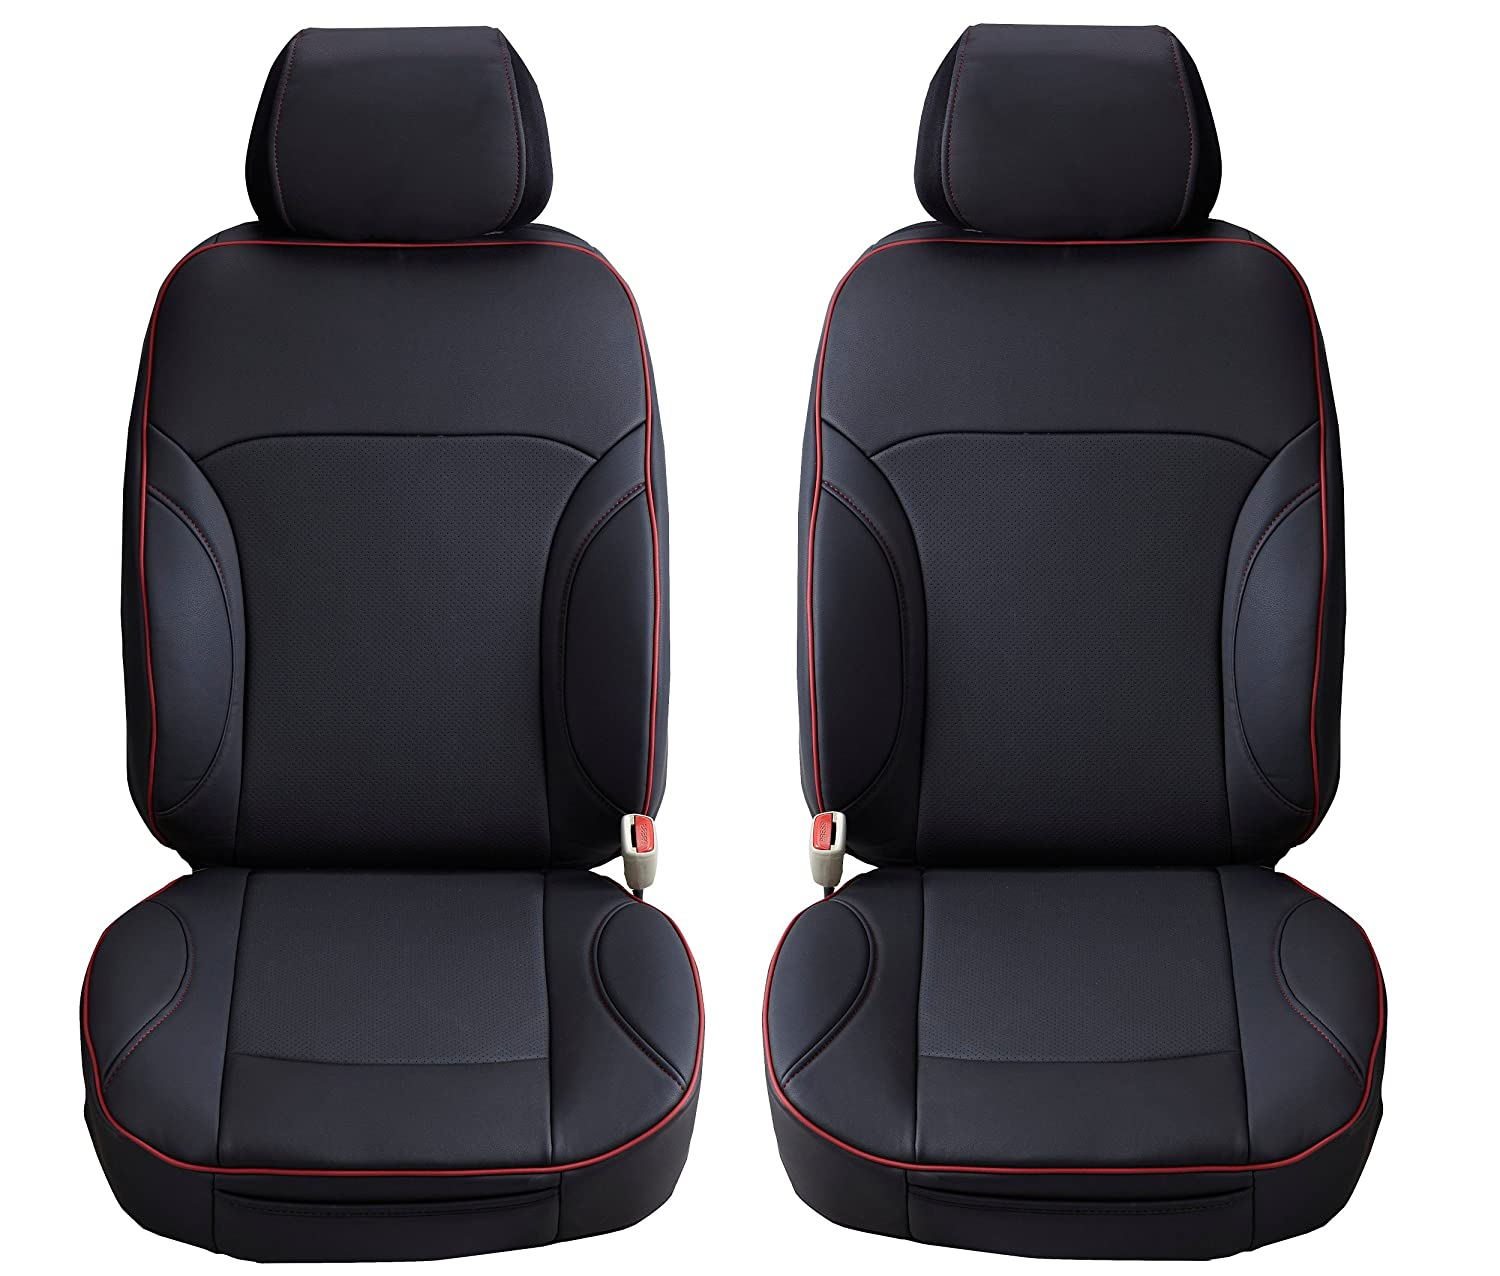 Aegis Cover SPVCTHL04 Semi Custom PVC Leather Seat Cover 2 Pack A Pair For Toyota Highlander Second Generation Front Seats